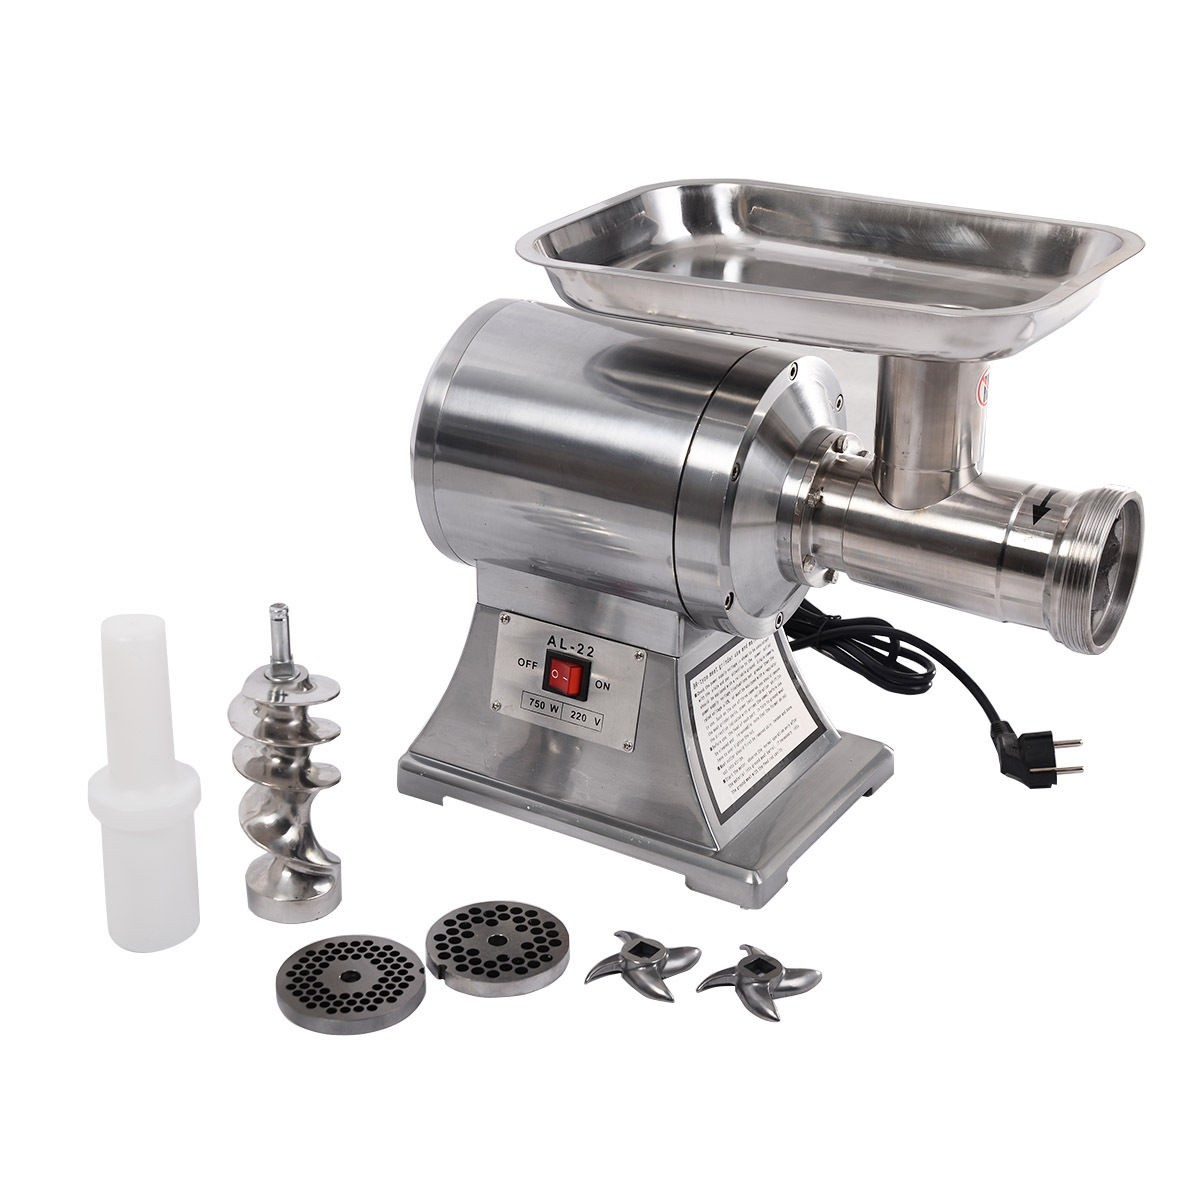 1100W Commercial #22 Industrial Electric Meat Grinder Food Processor,1HP, Silver by Apontus